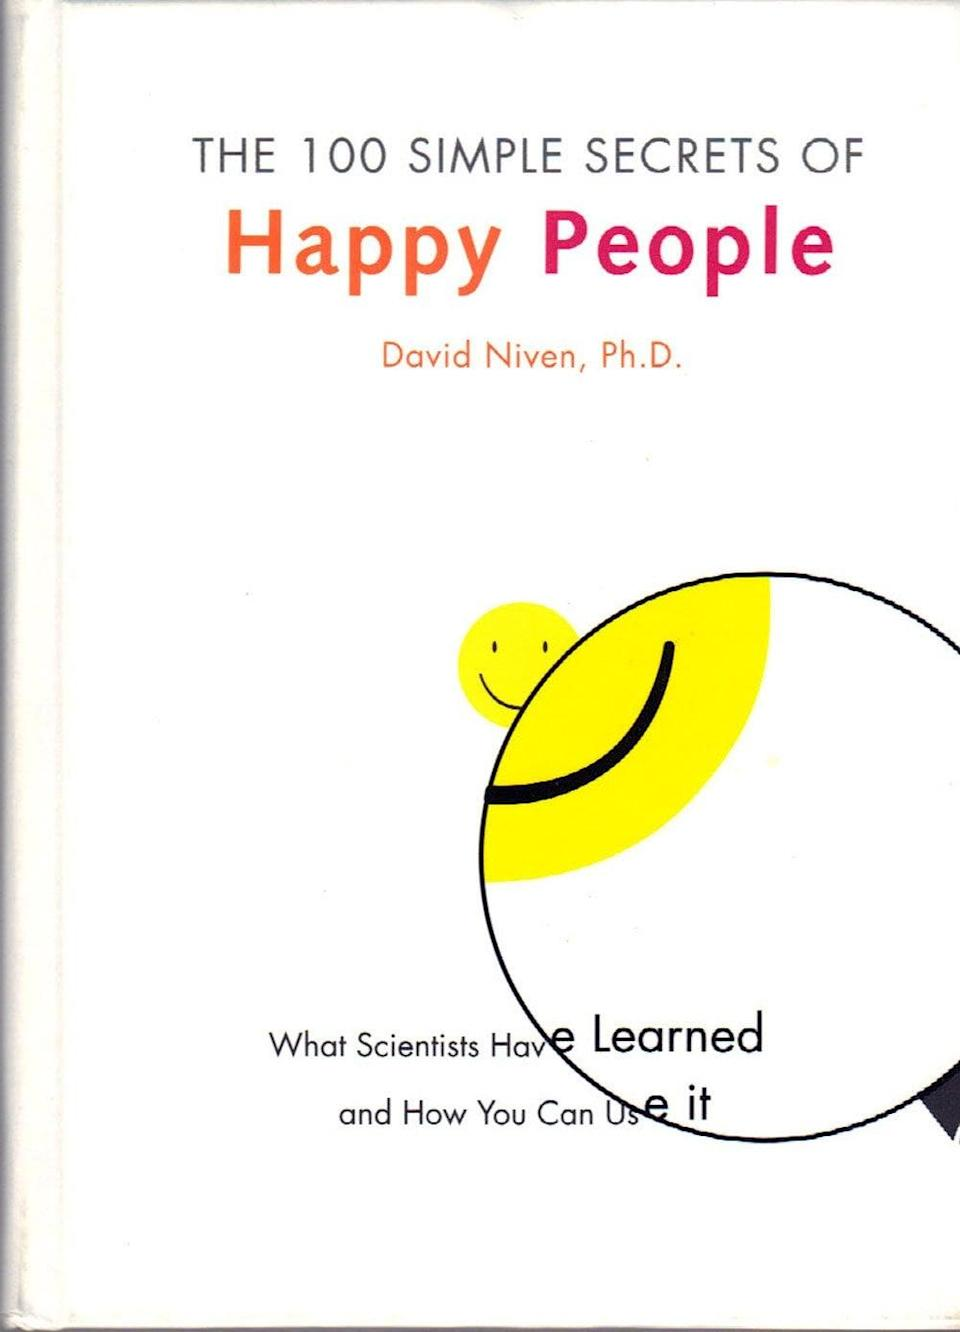 <p>There are thousands of studies on what makes people happy, but they're often inaccessible to the public. In <span>The 100 Simple Secrets of Happy People</span>, David Niven, PhD, pulls the most important nuggets of info from these studies and presents them to you in an easy-to-understand format. </p>